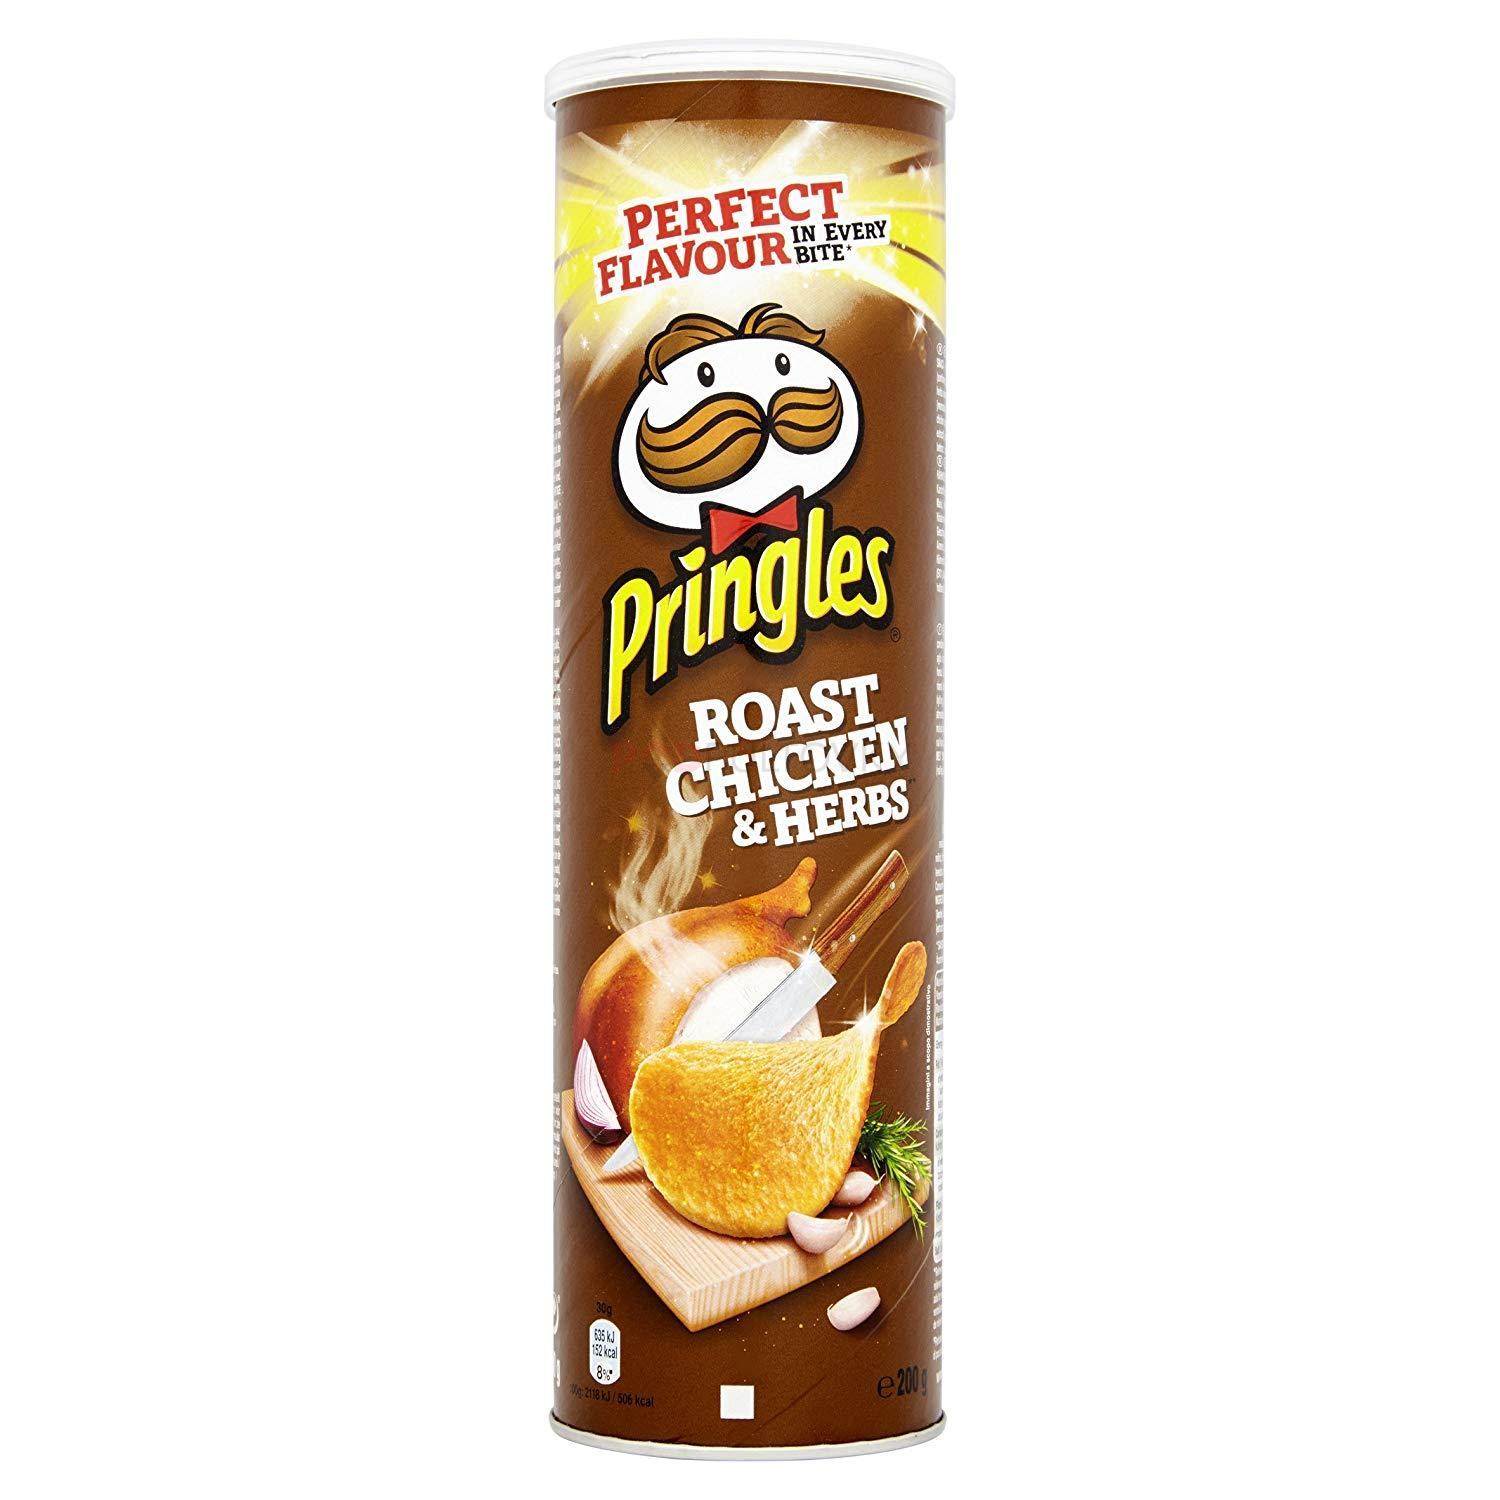 Pringles Roast Chicken & Herbs 200g (DE)